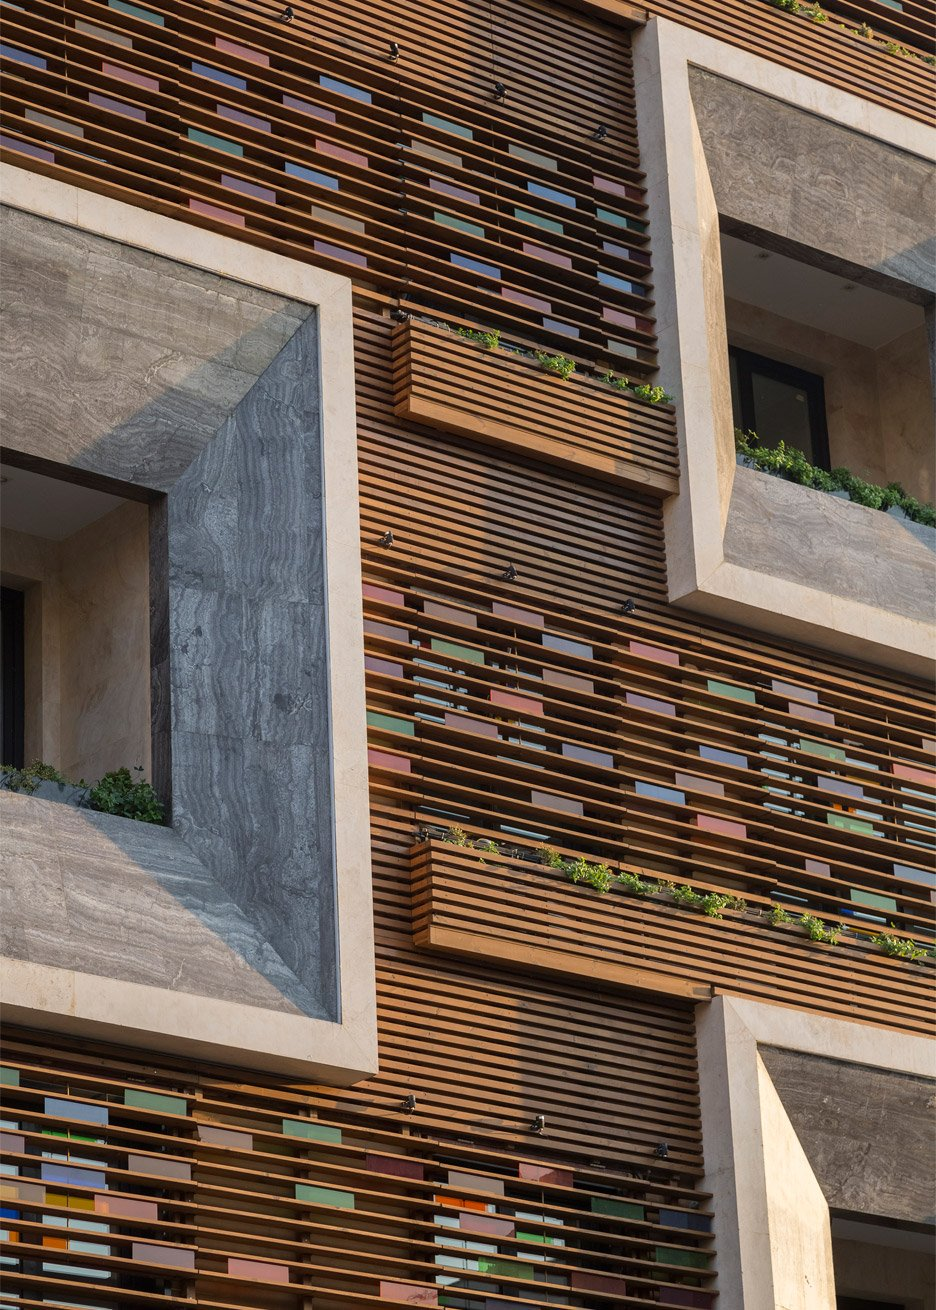 orsi-khaneh-keivani-architects-residential-housing-apartments-shutters-stained-glass-tehran-iran_dezeen_936_12